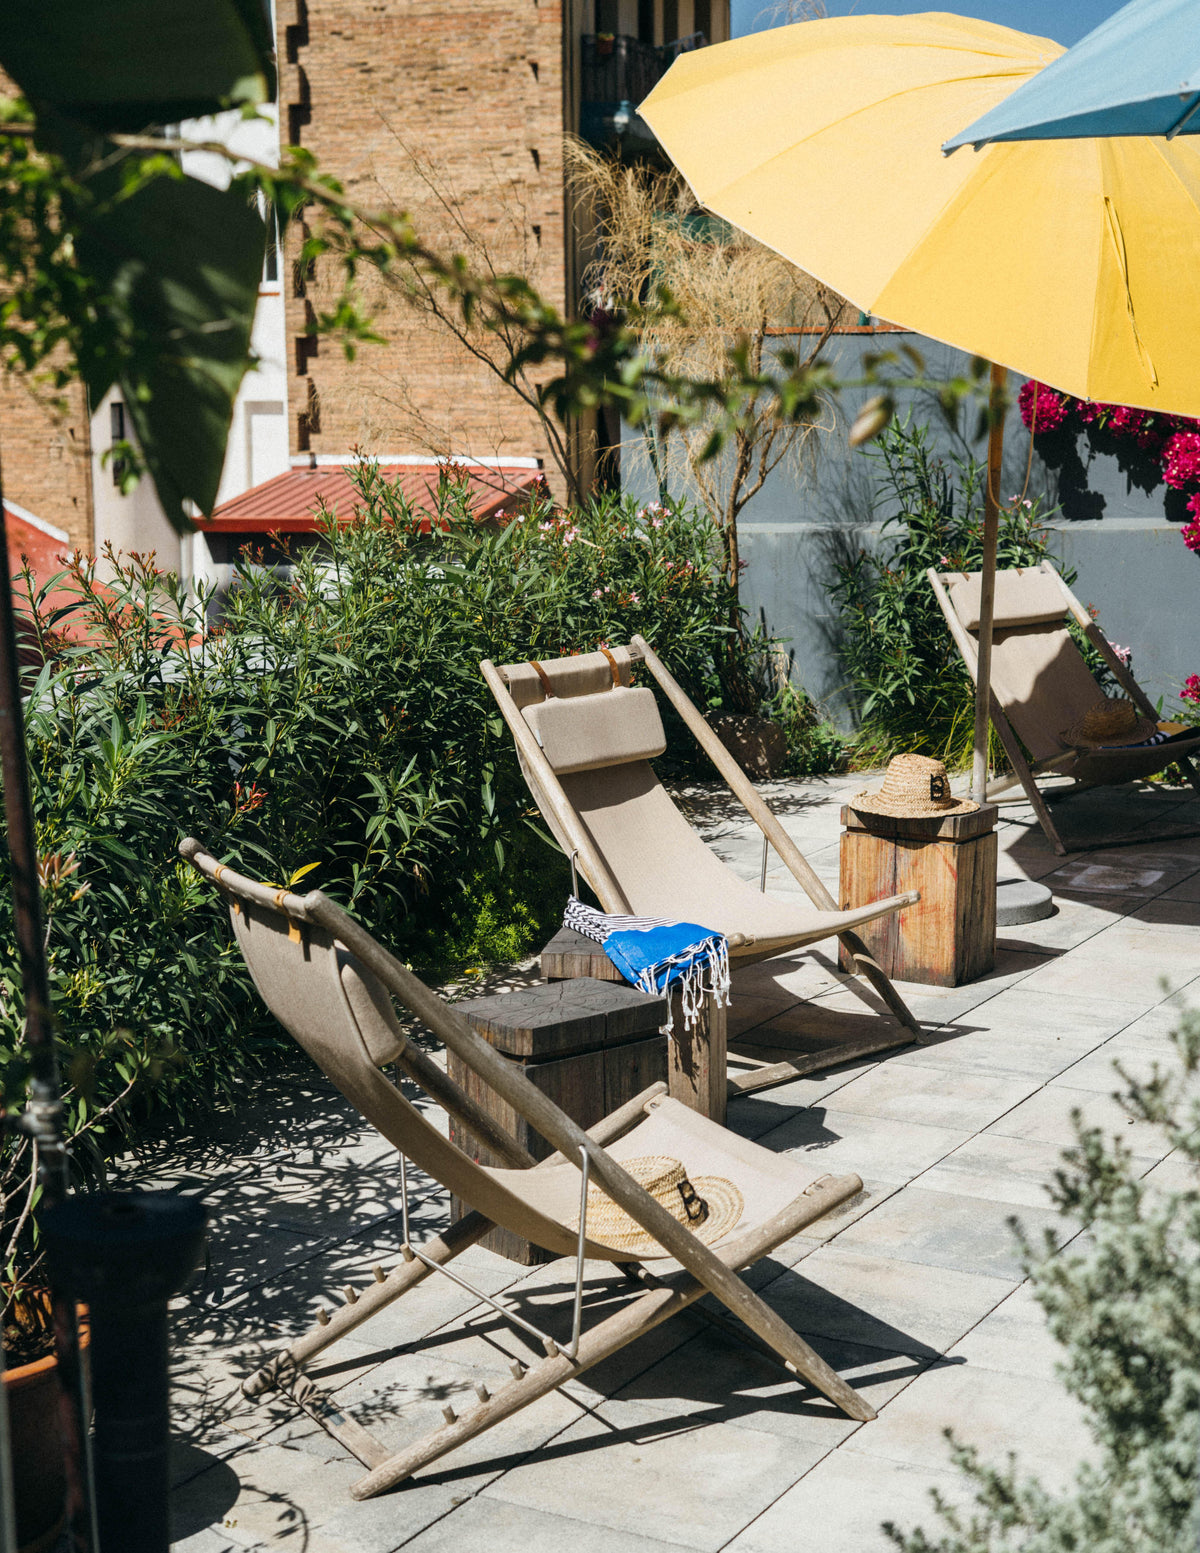 Hotel Brummell, Barcelona - rooftop deck with colorful sun umbrellas and lounge chairs